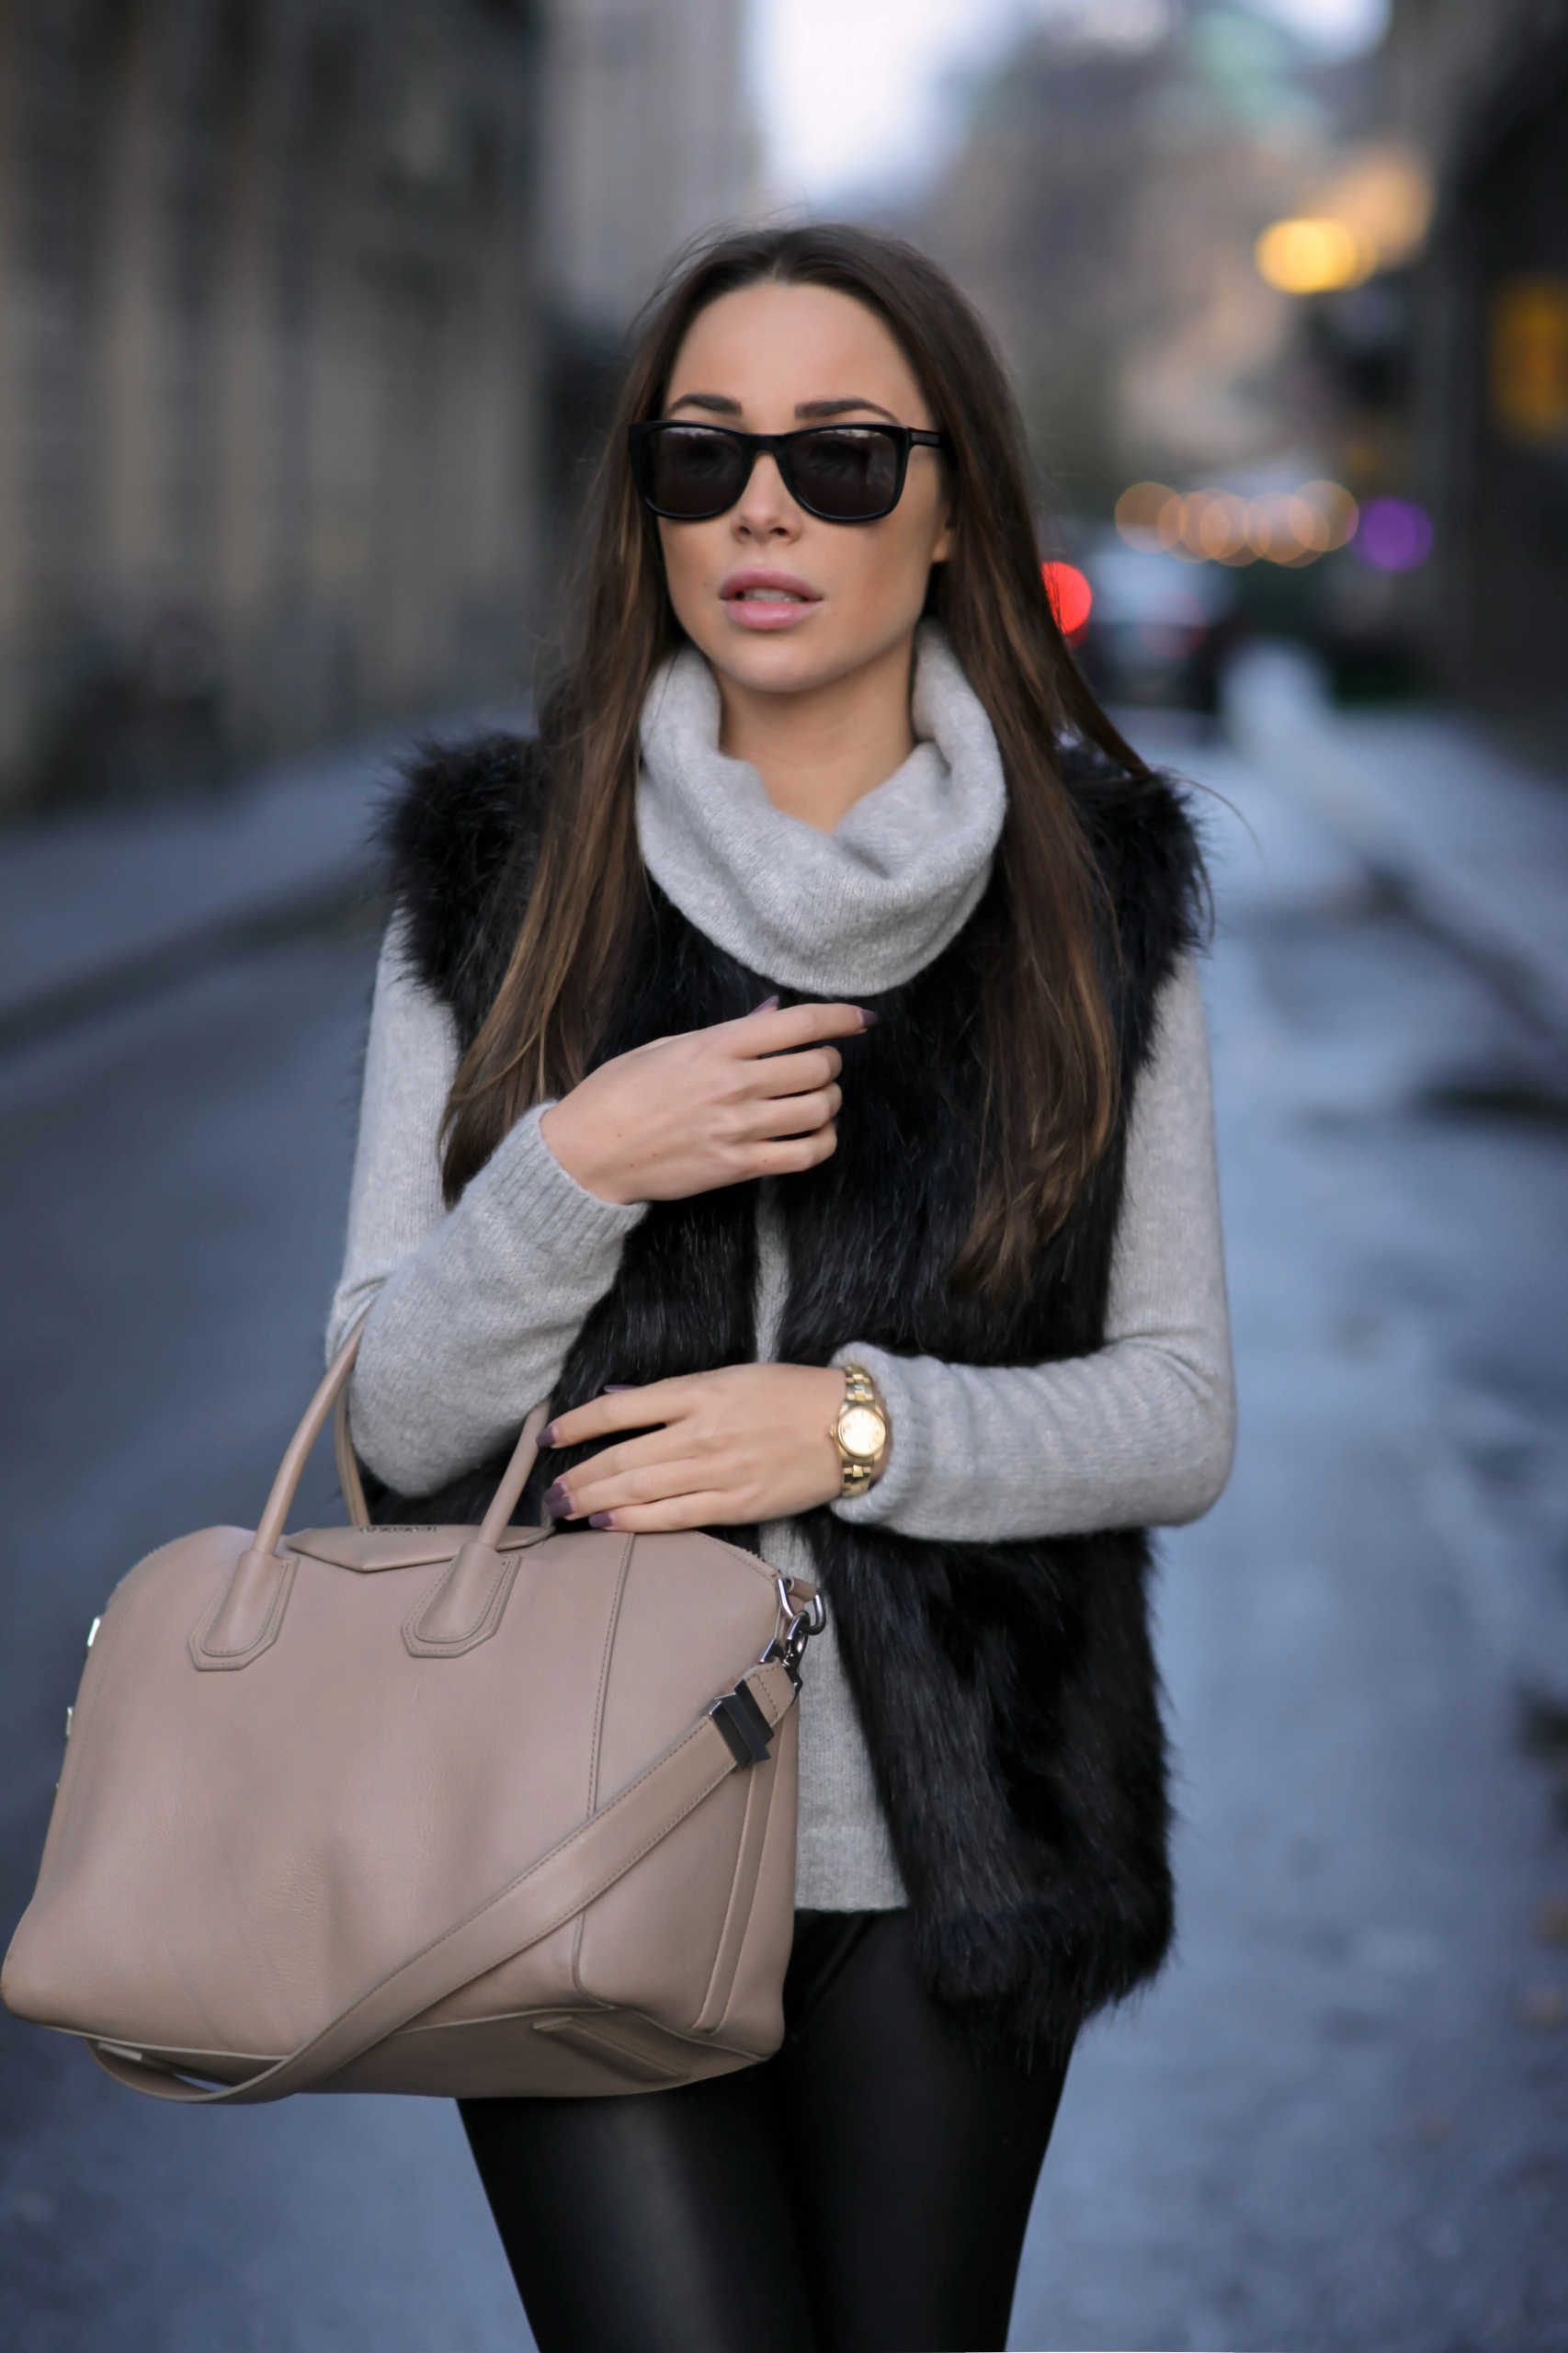 Johanna Olsson is wearing a black faux fur vest from Pieces